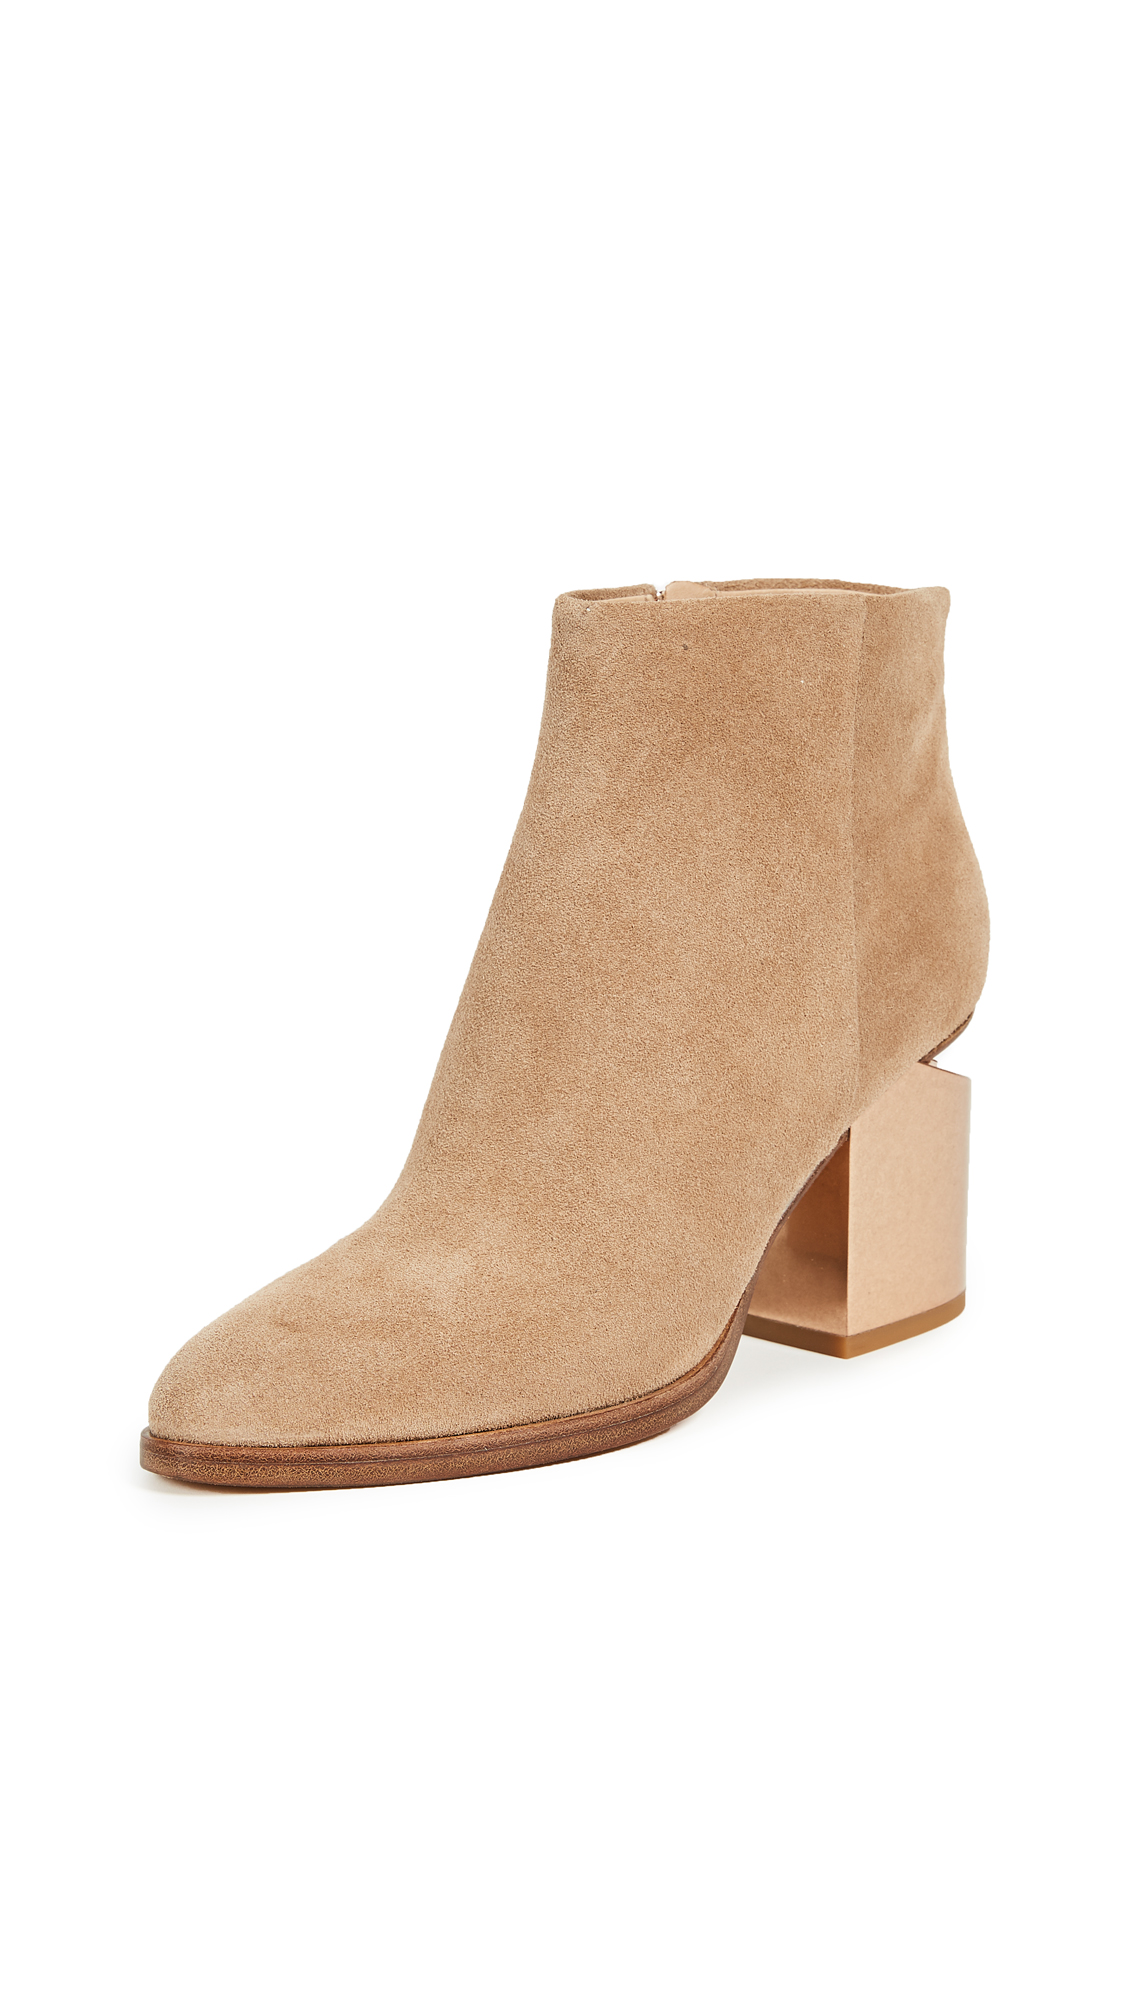 Alexander Wang Gabi Metal Heel Booties - Clay